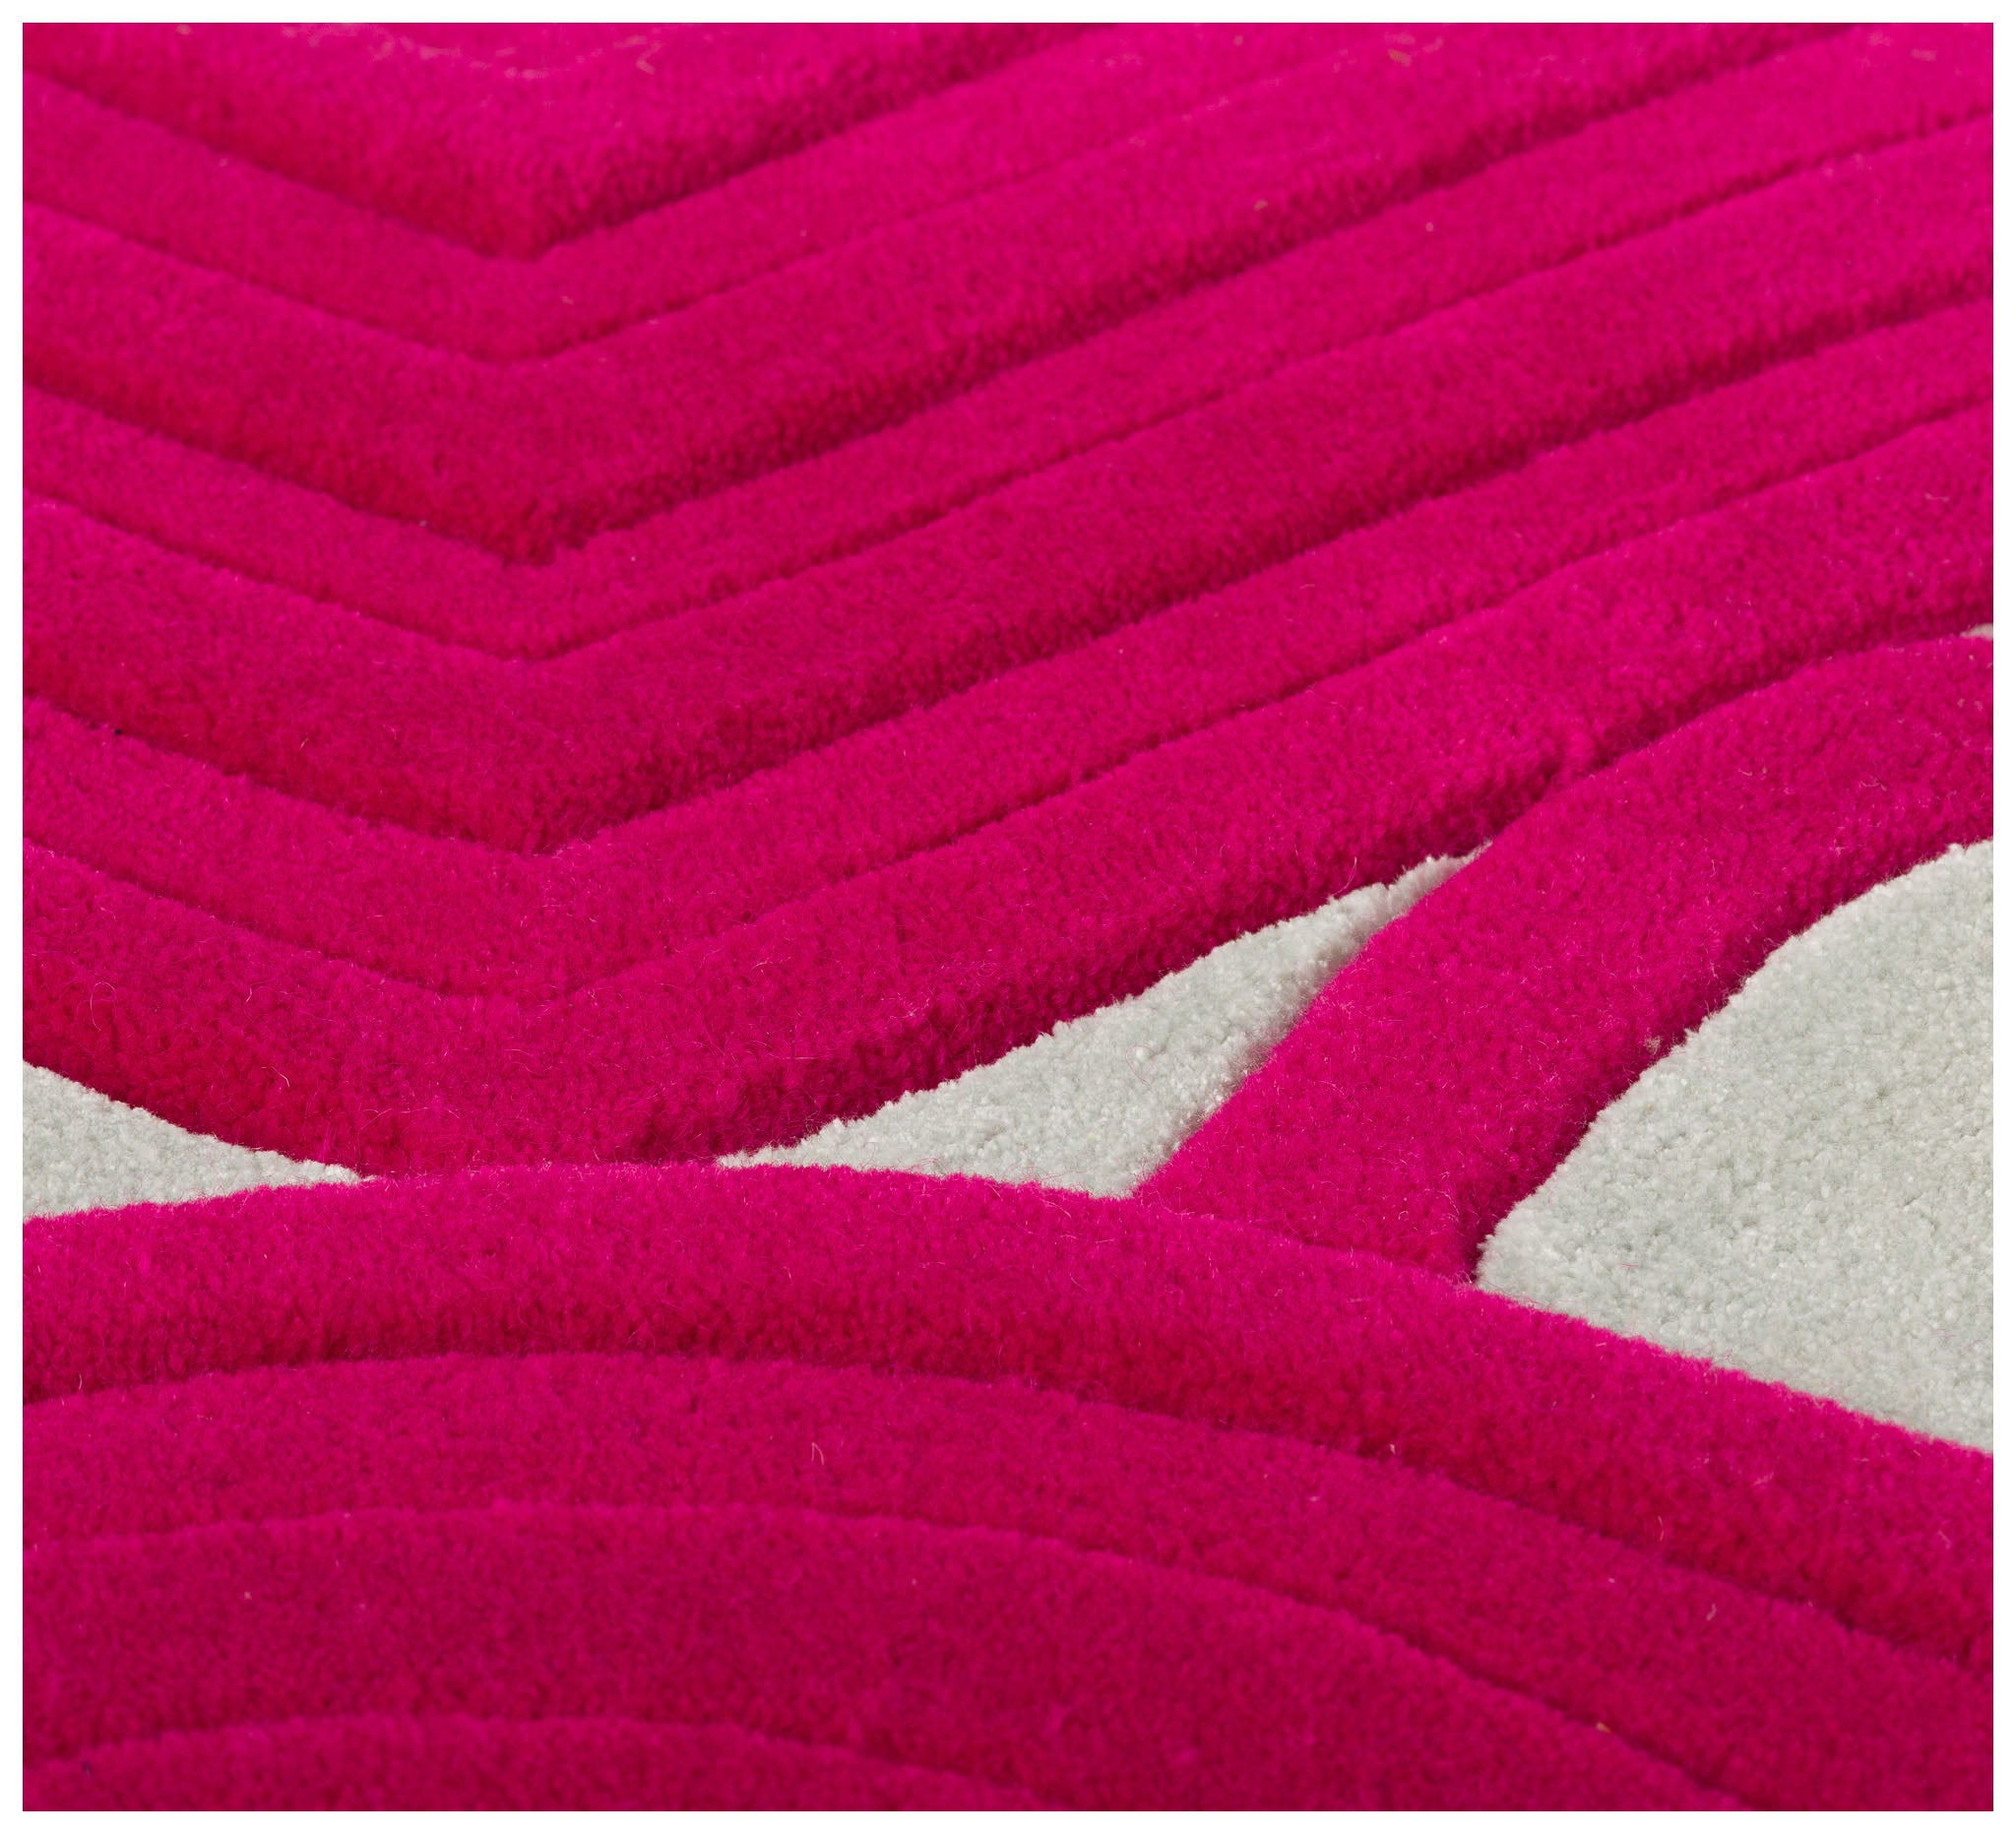 Petrina Turner Design X Designer Rugs - EVELYN hand tufted rug